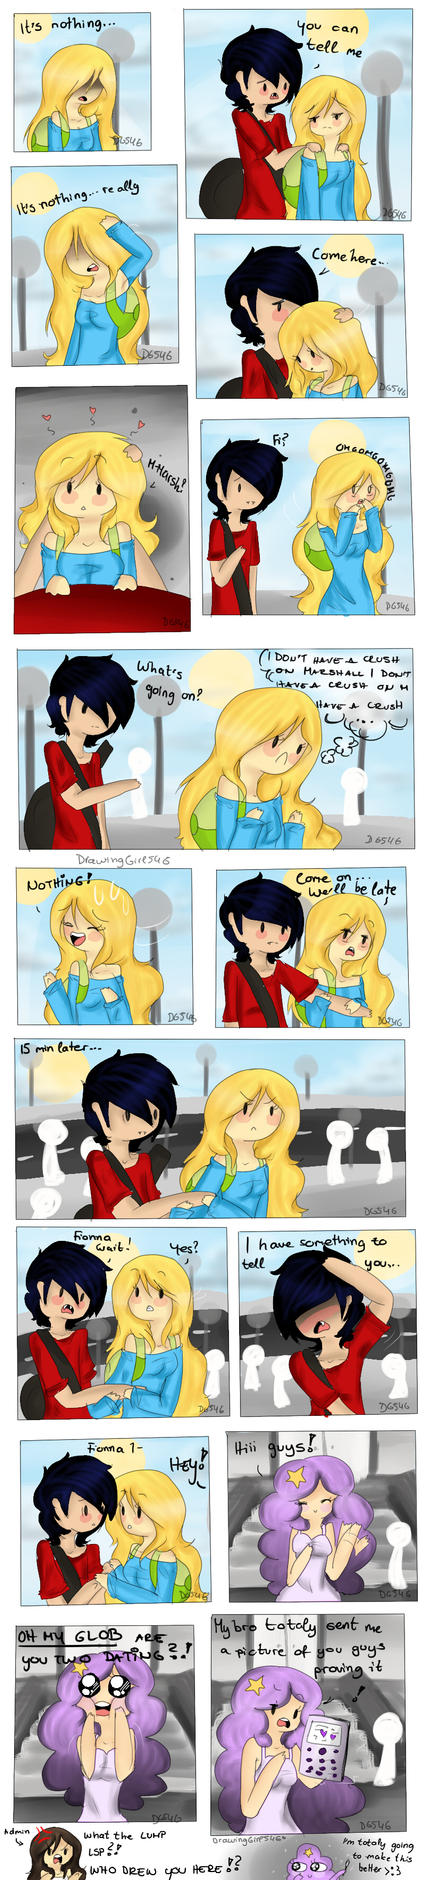 School time page 2 by Drawing-Heart